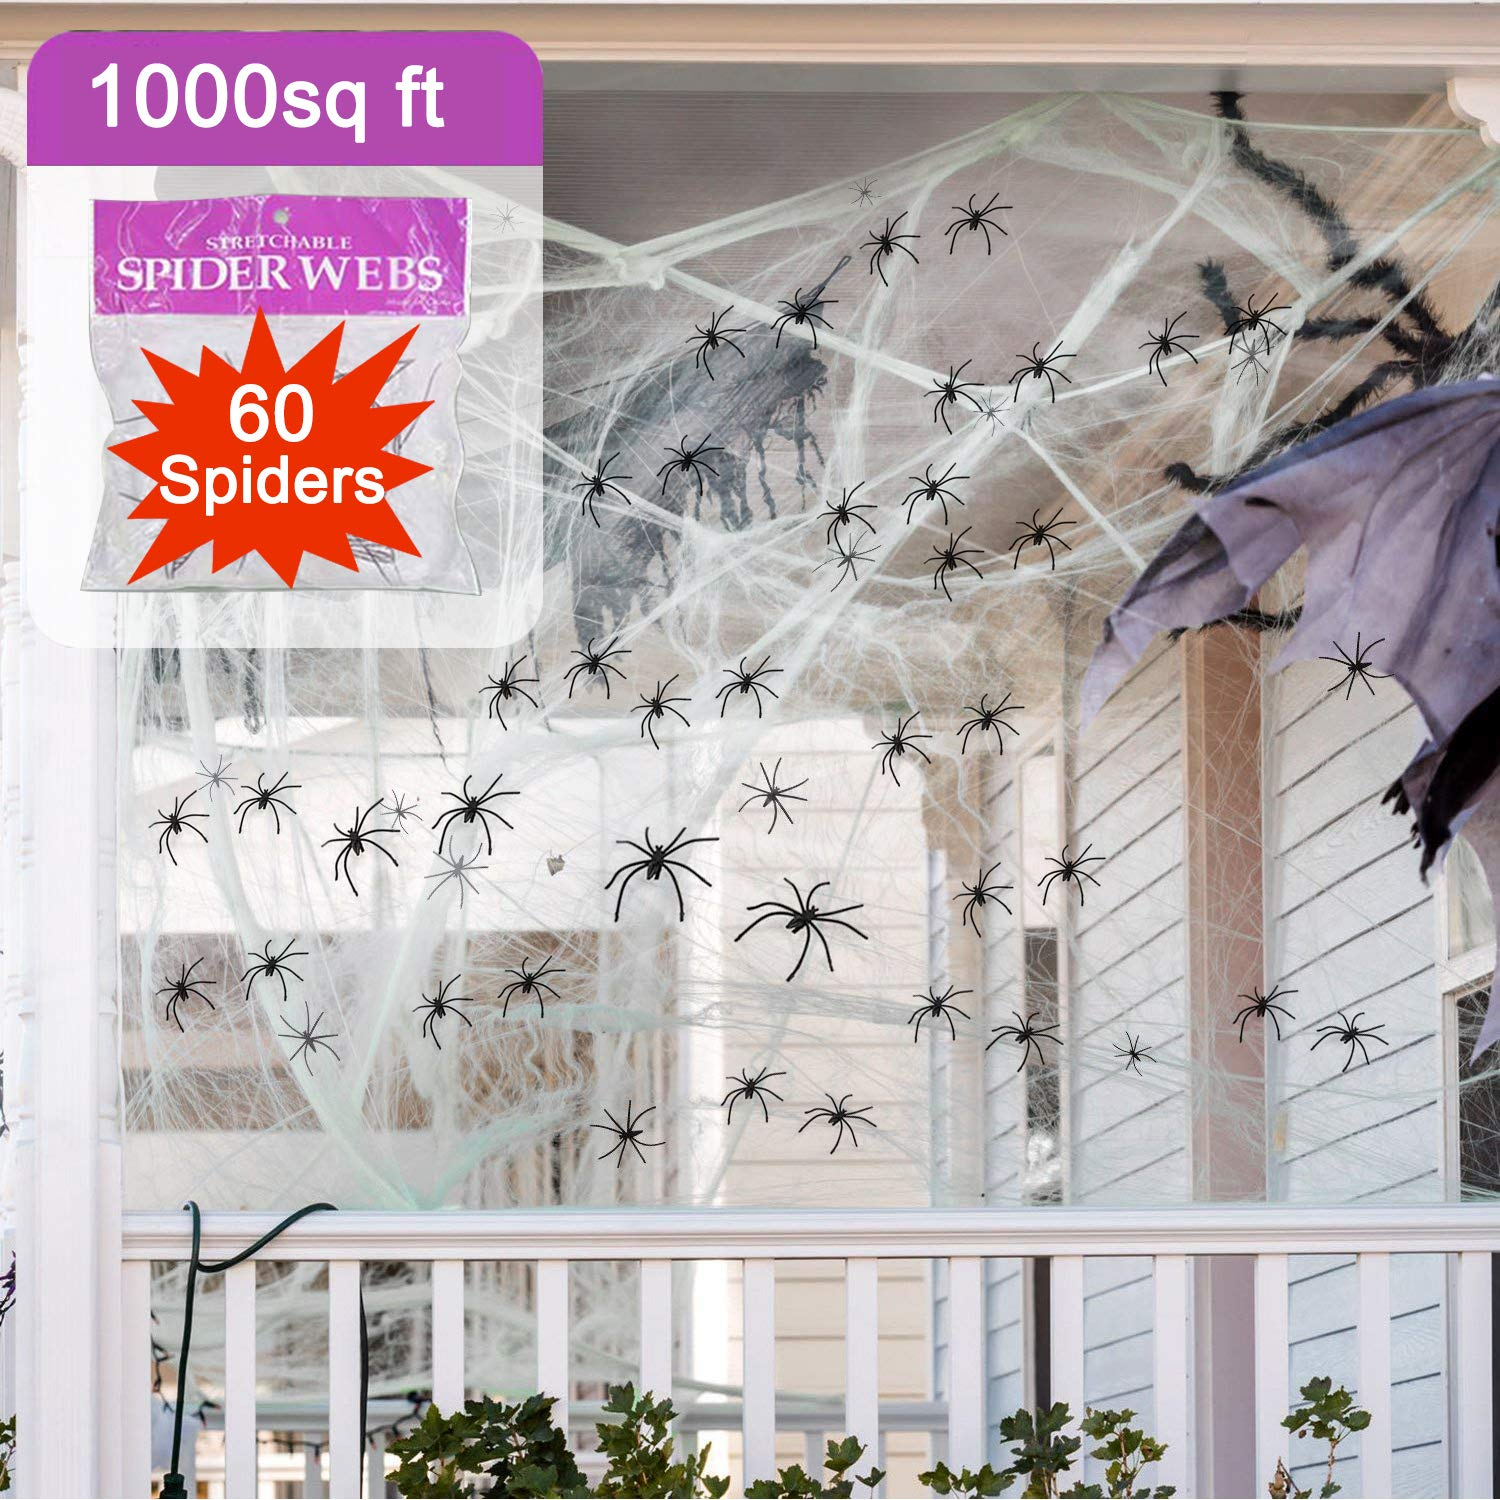 GBD Halloween Decorations Spider Web Giant 1000 Square Feet Stretch with 60 1.5'' Plastic Scary Spooky Spiders Webbing Mega for Outdoor Indoor Yard Garden Lawn Large Cobweb Halloween Party Supplies Garden Holiday Decor